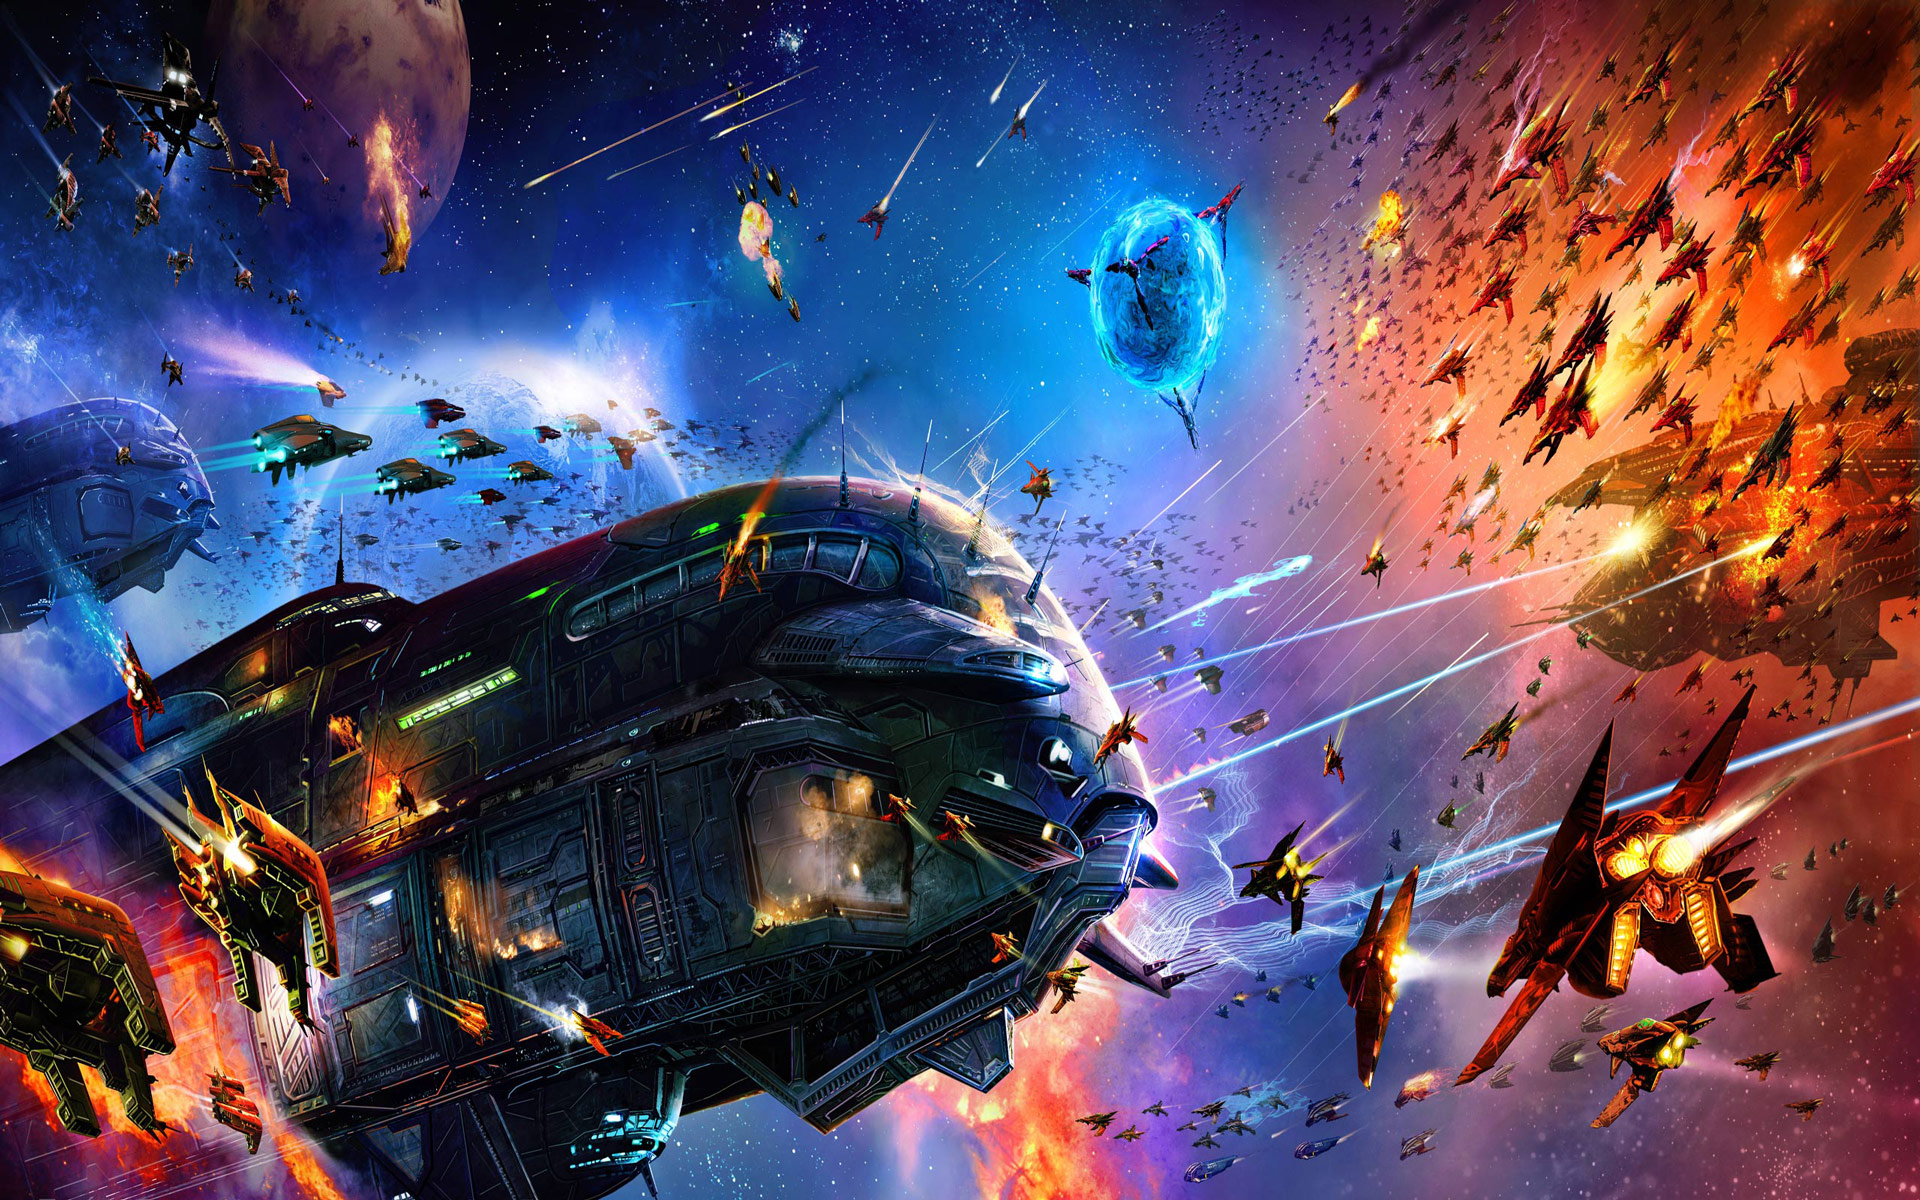 desktop wallpaper of sci fi space war computer desktop 1920x1200